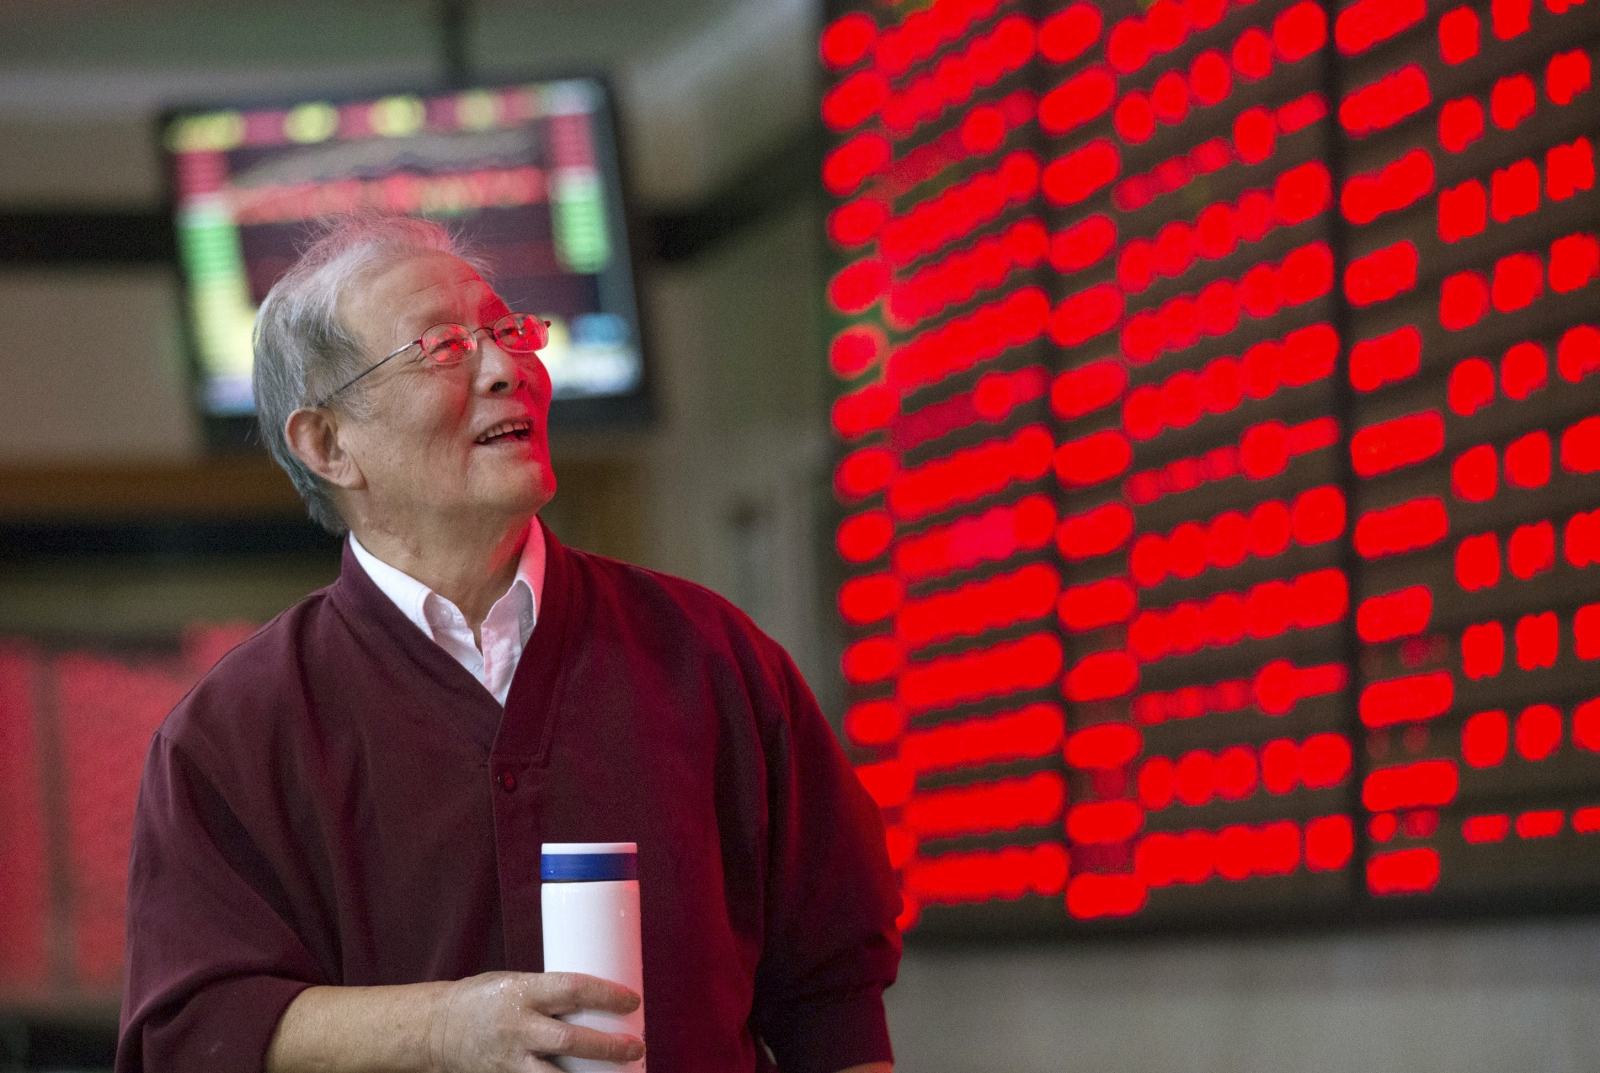 Asian markets: China Shanghai Composite gains despite a negative Wall Street close overnight